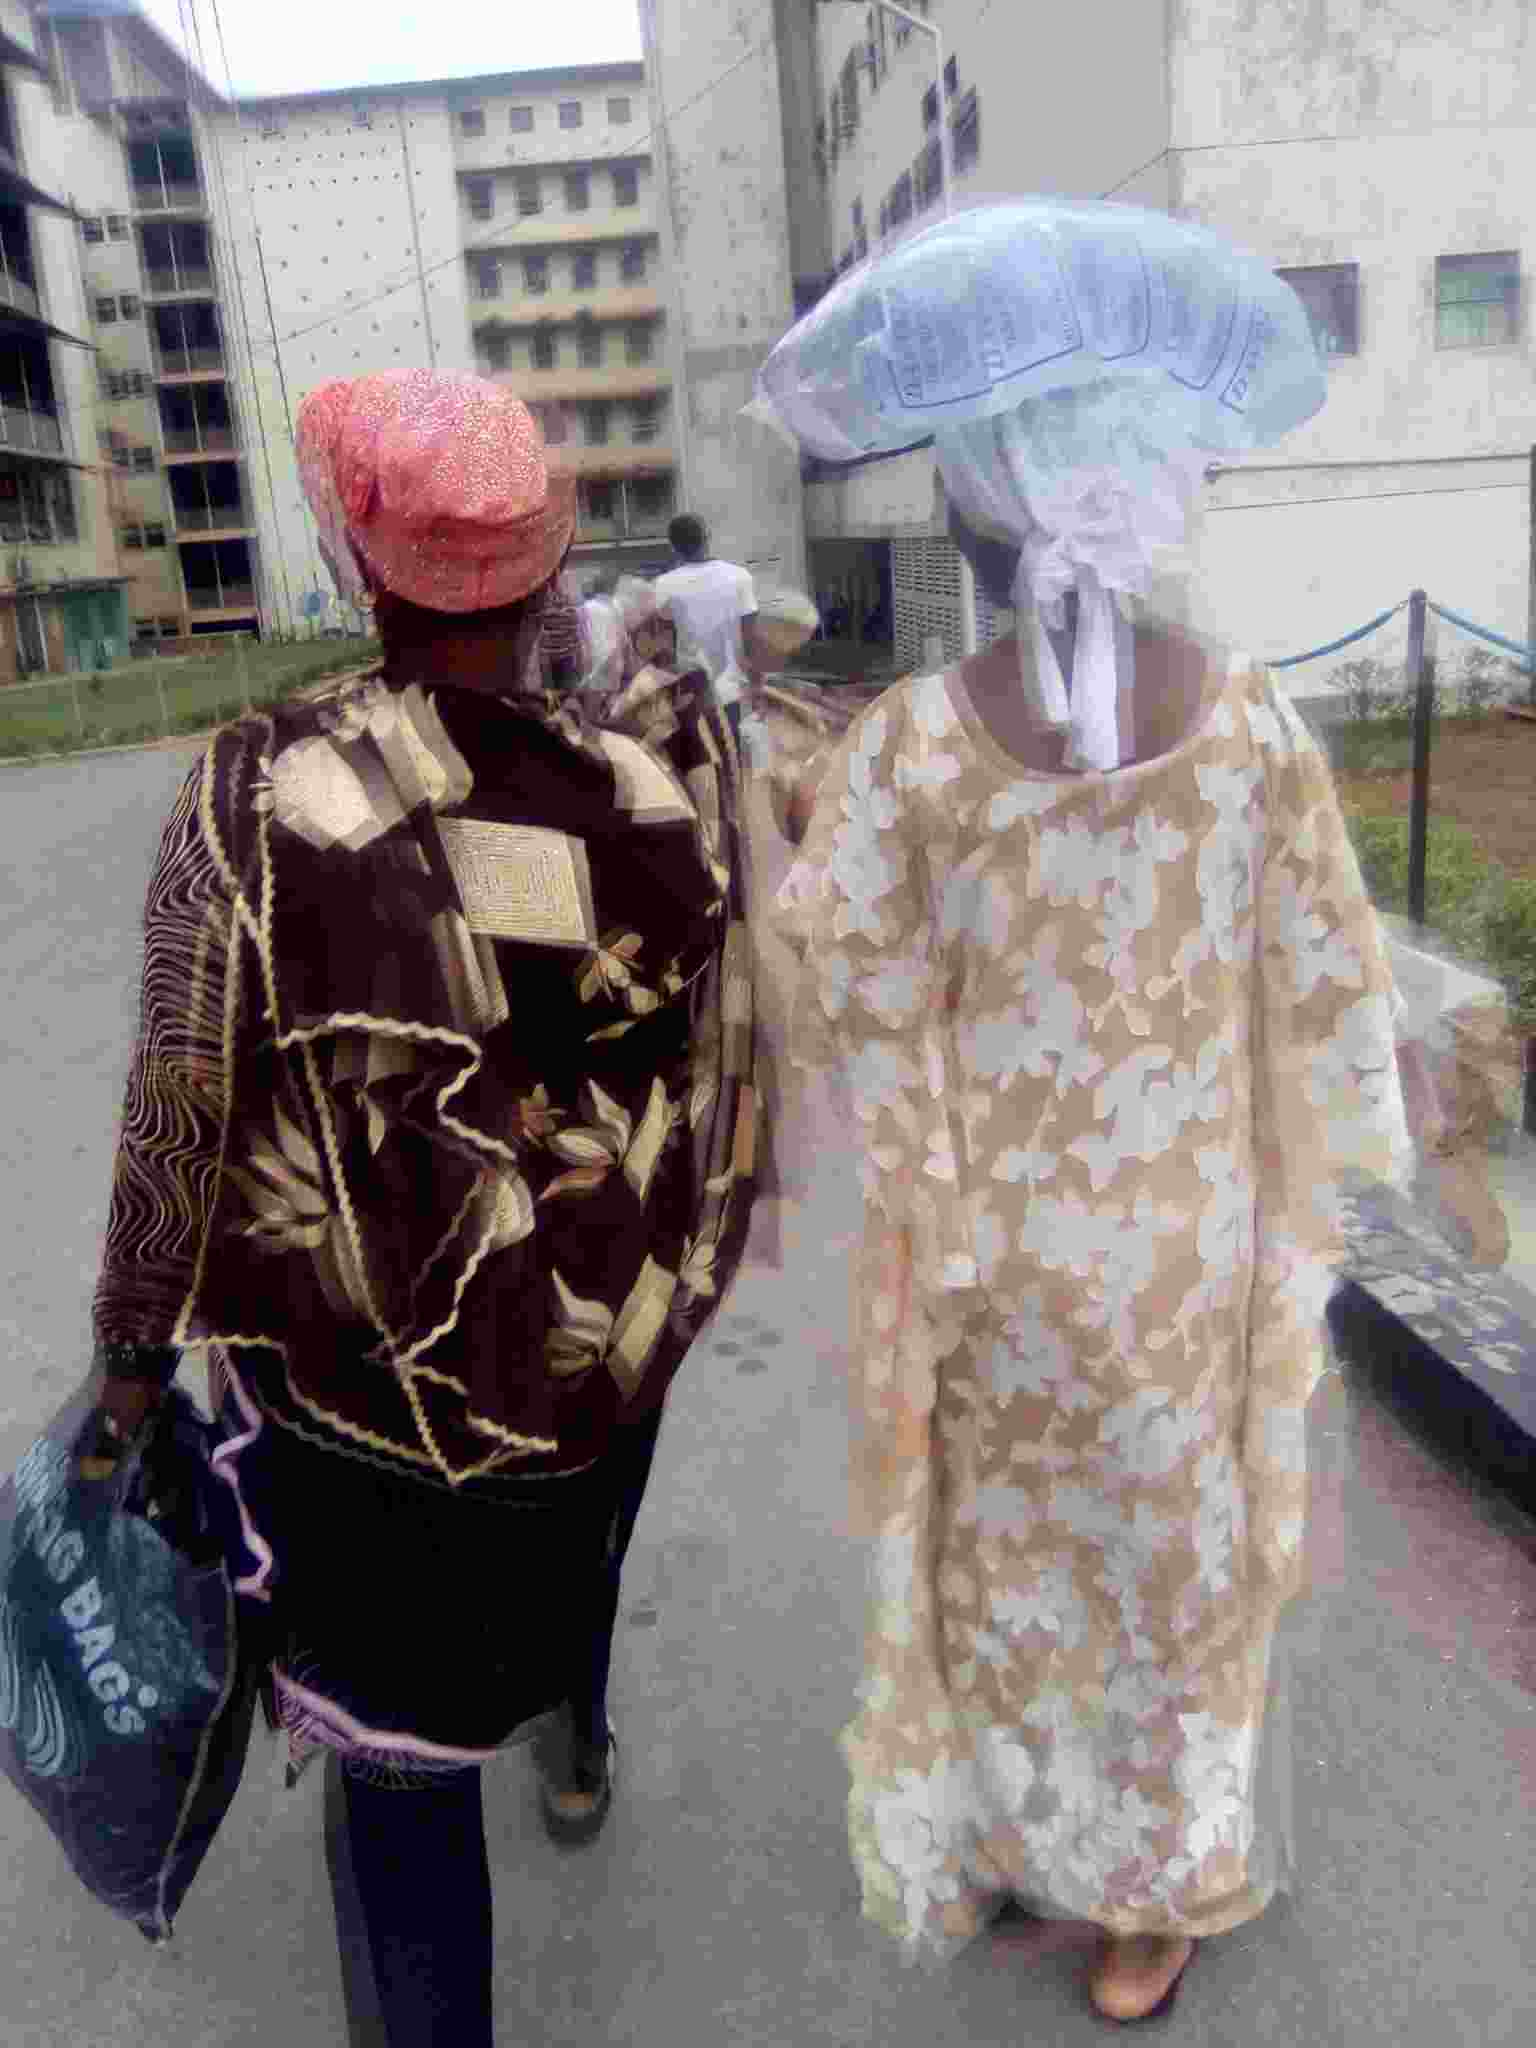 UCH Ibadan: Sachet Water Sellers inflate Prices as Scarcity Persists in Hospital